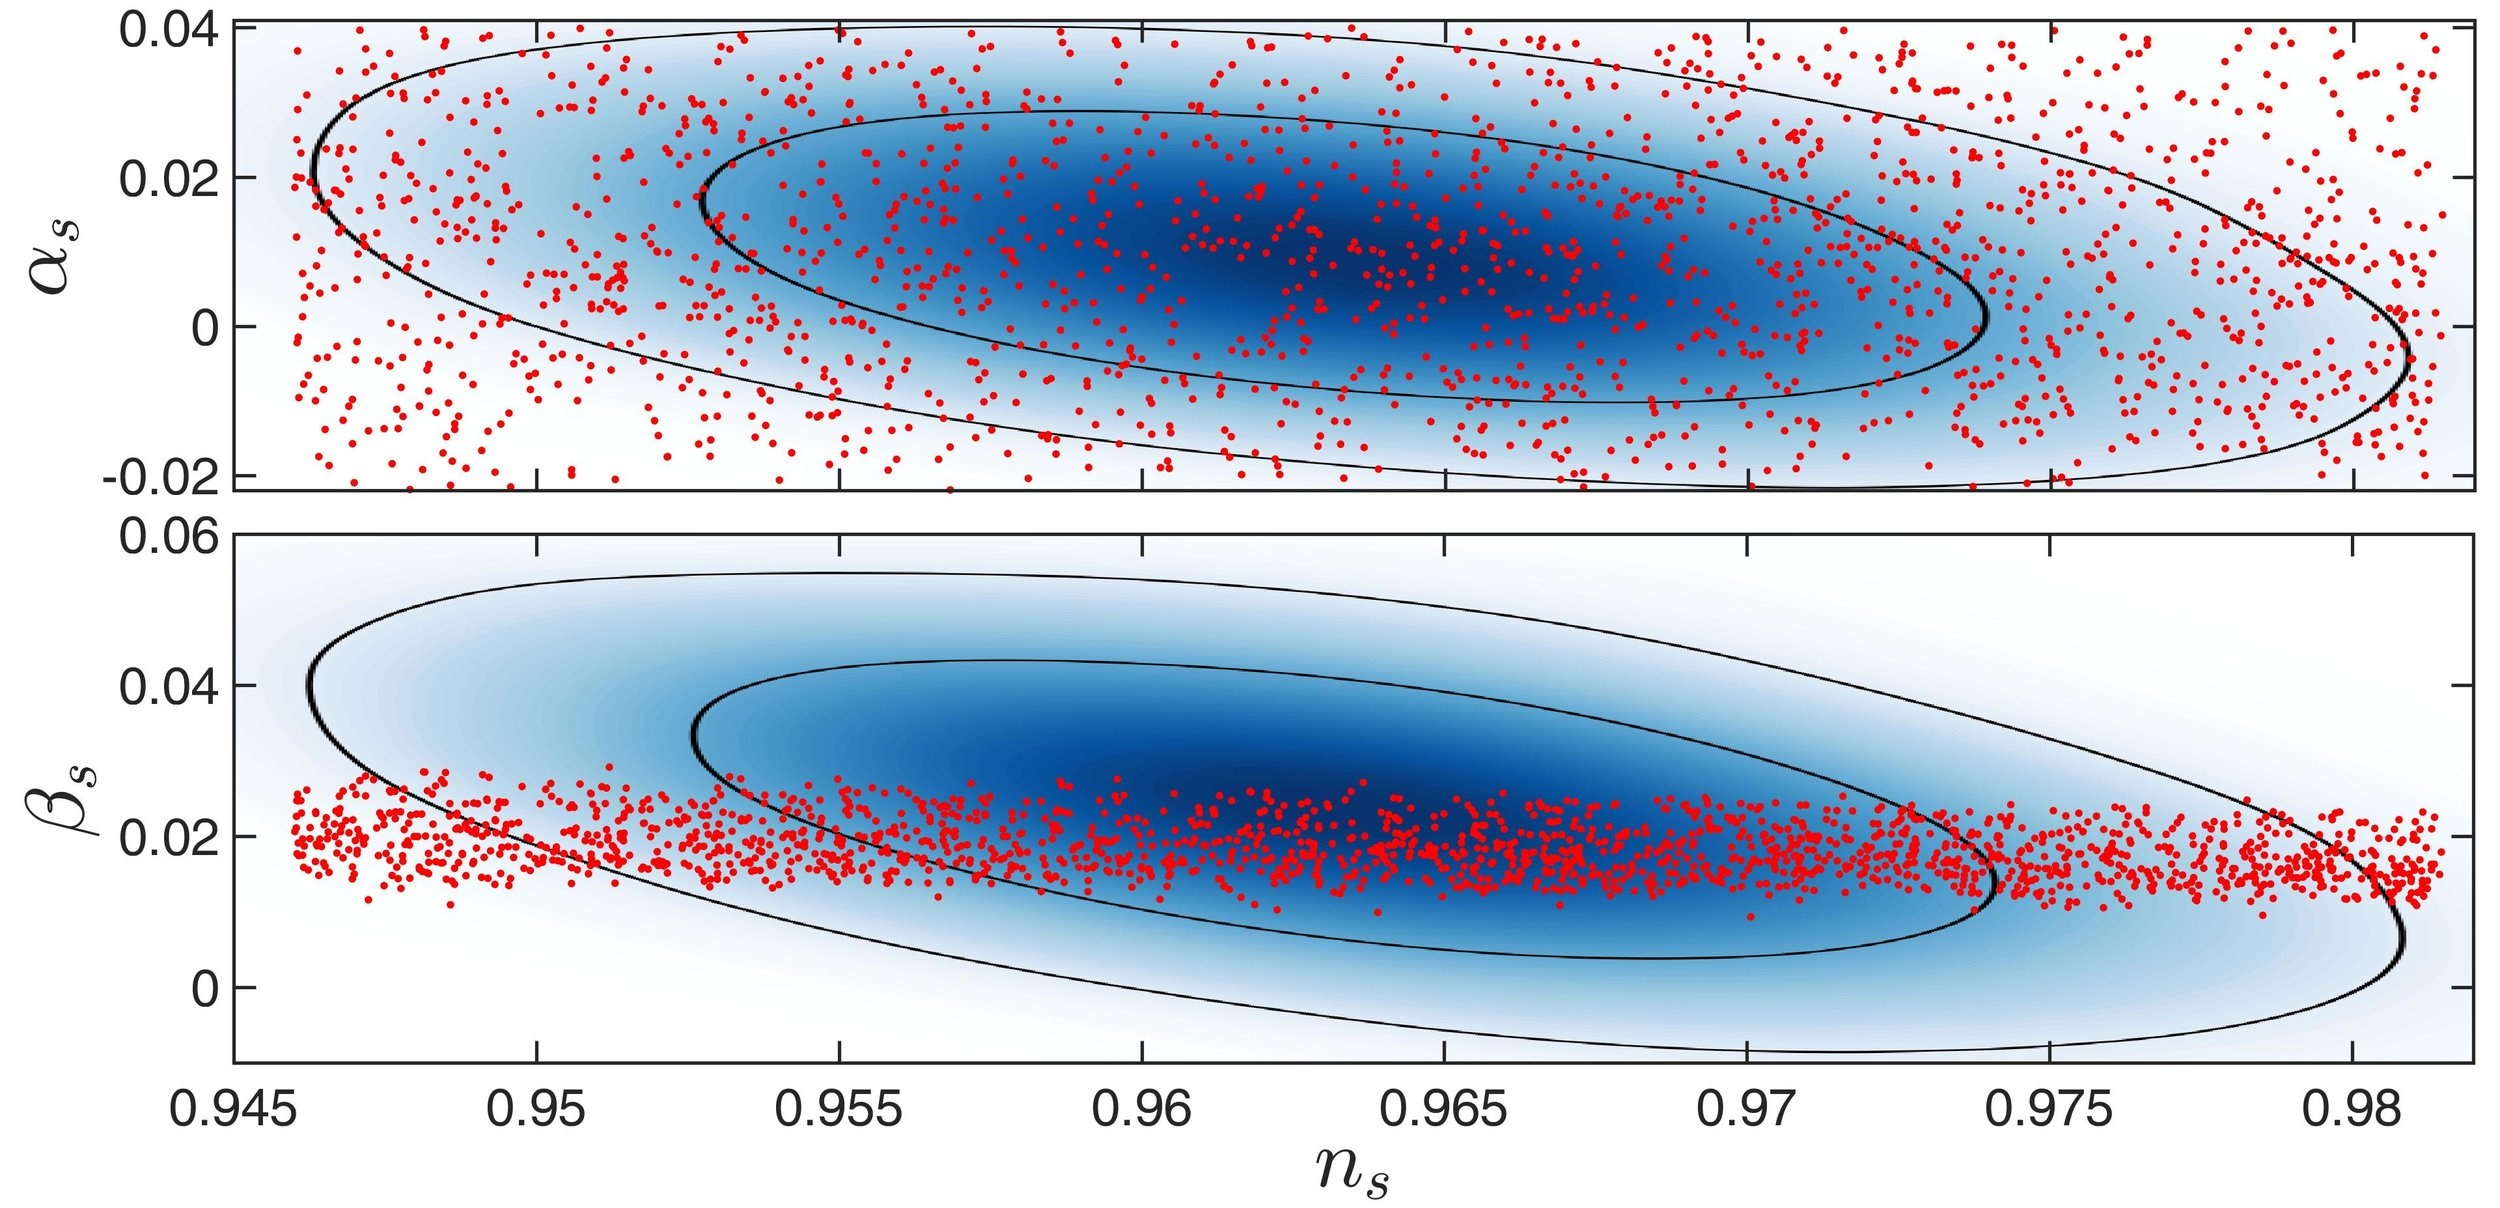 Gravitational Wave generating potentials conforming to known CMB observables.